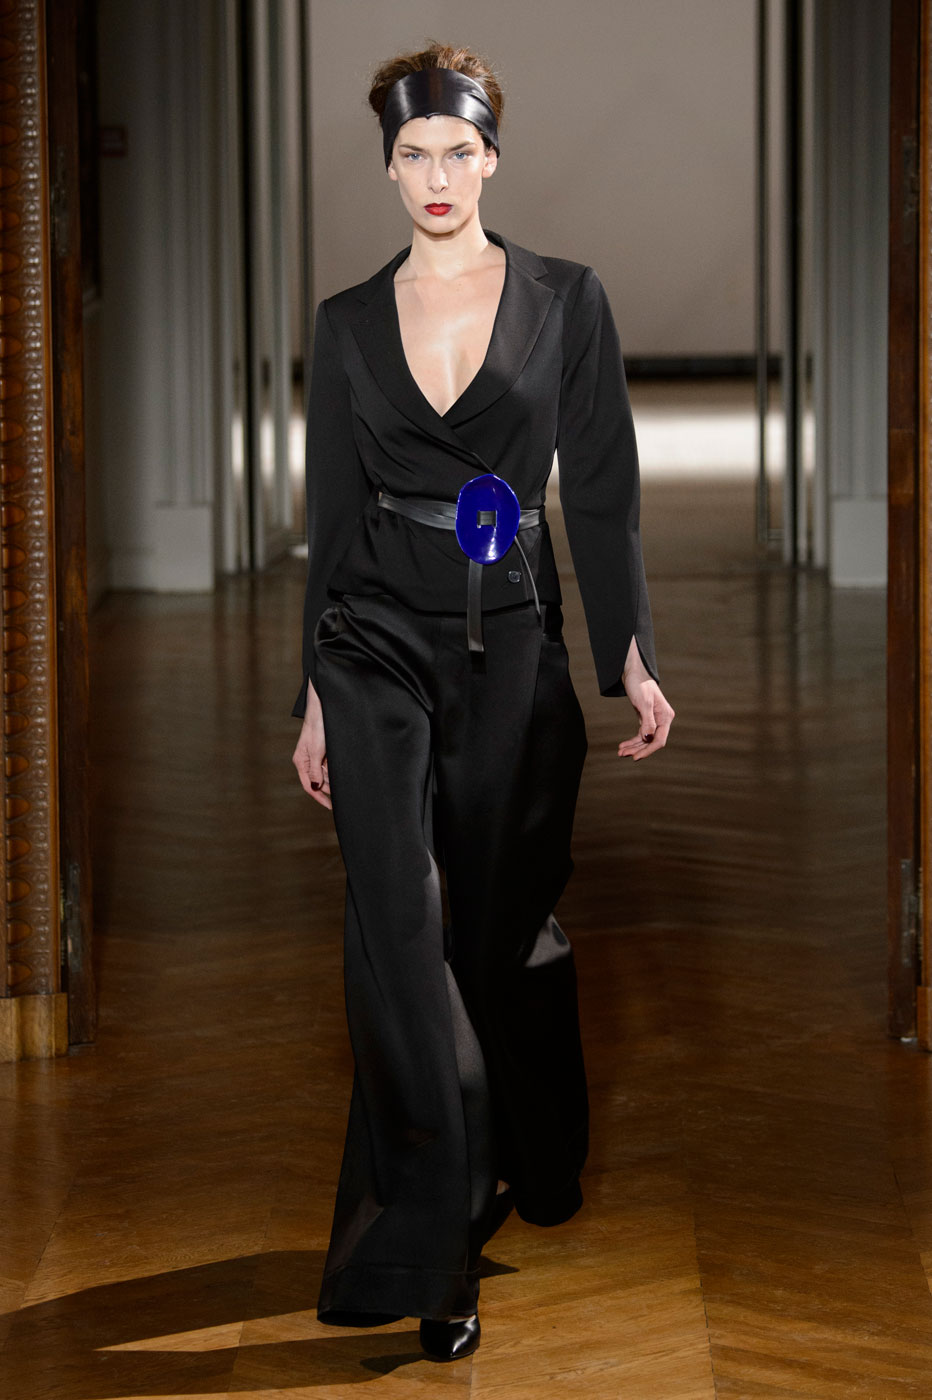 Gustavolins-Prive-fashion-runway-show-haute-couture-paris-spring-2015-the-impression-39